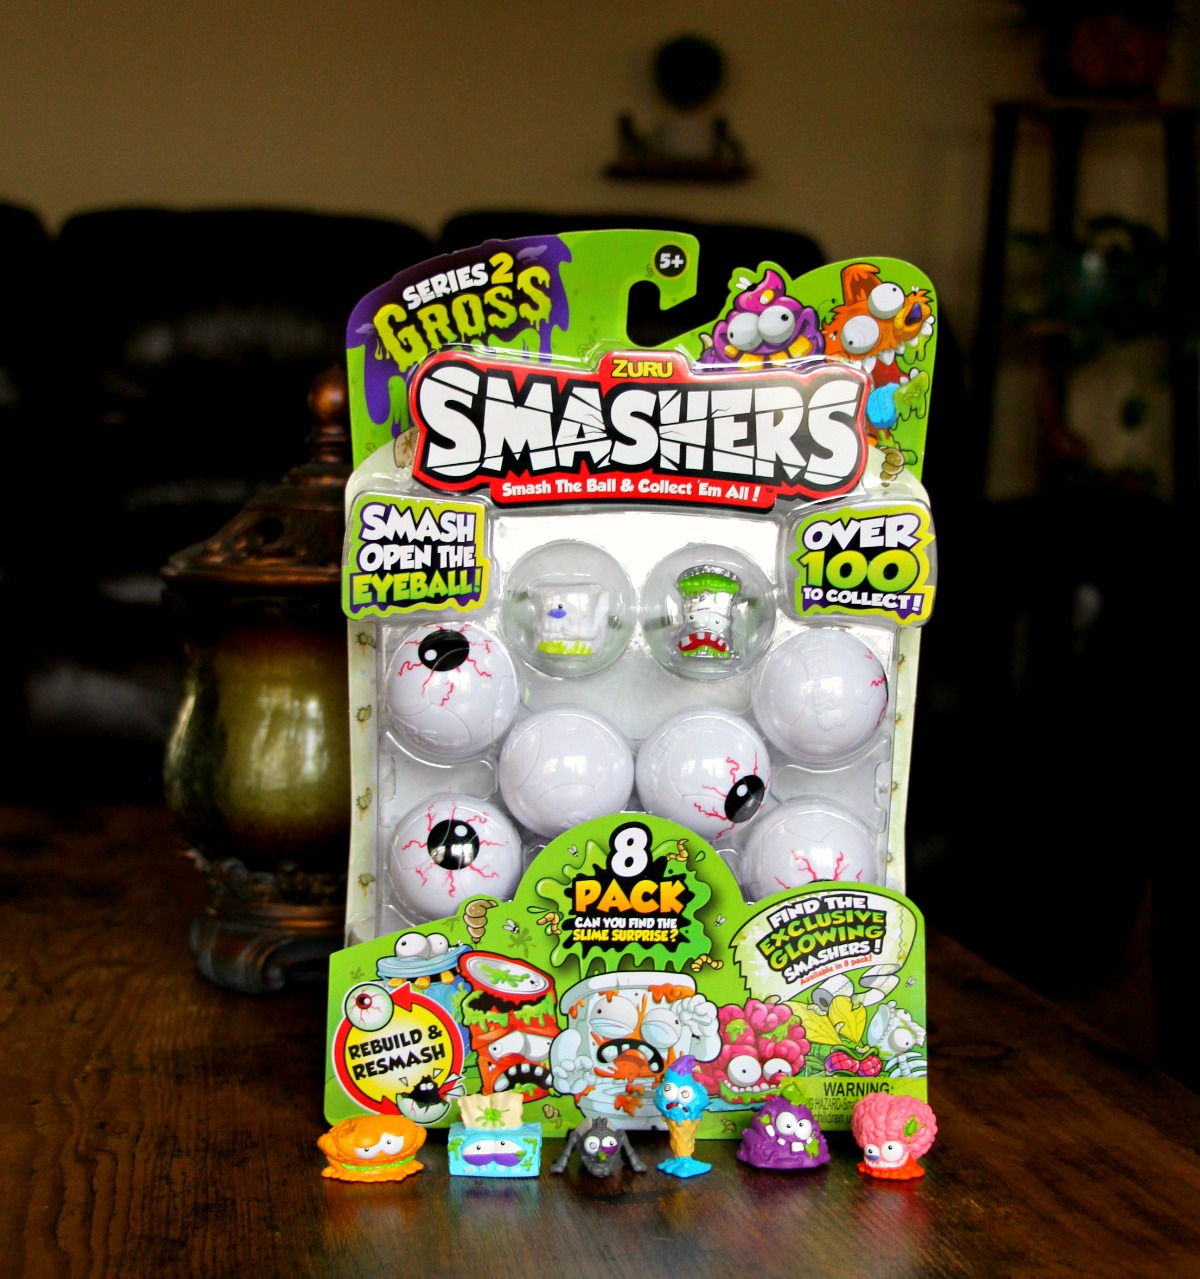 Smashers Series 2 Gross Unboxing